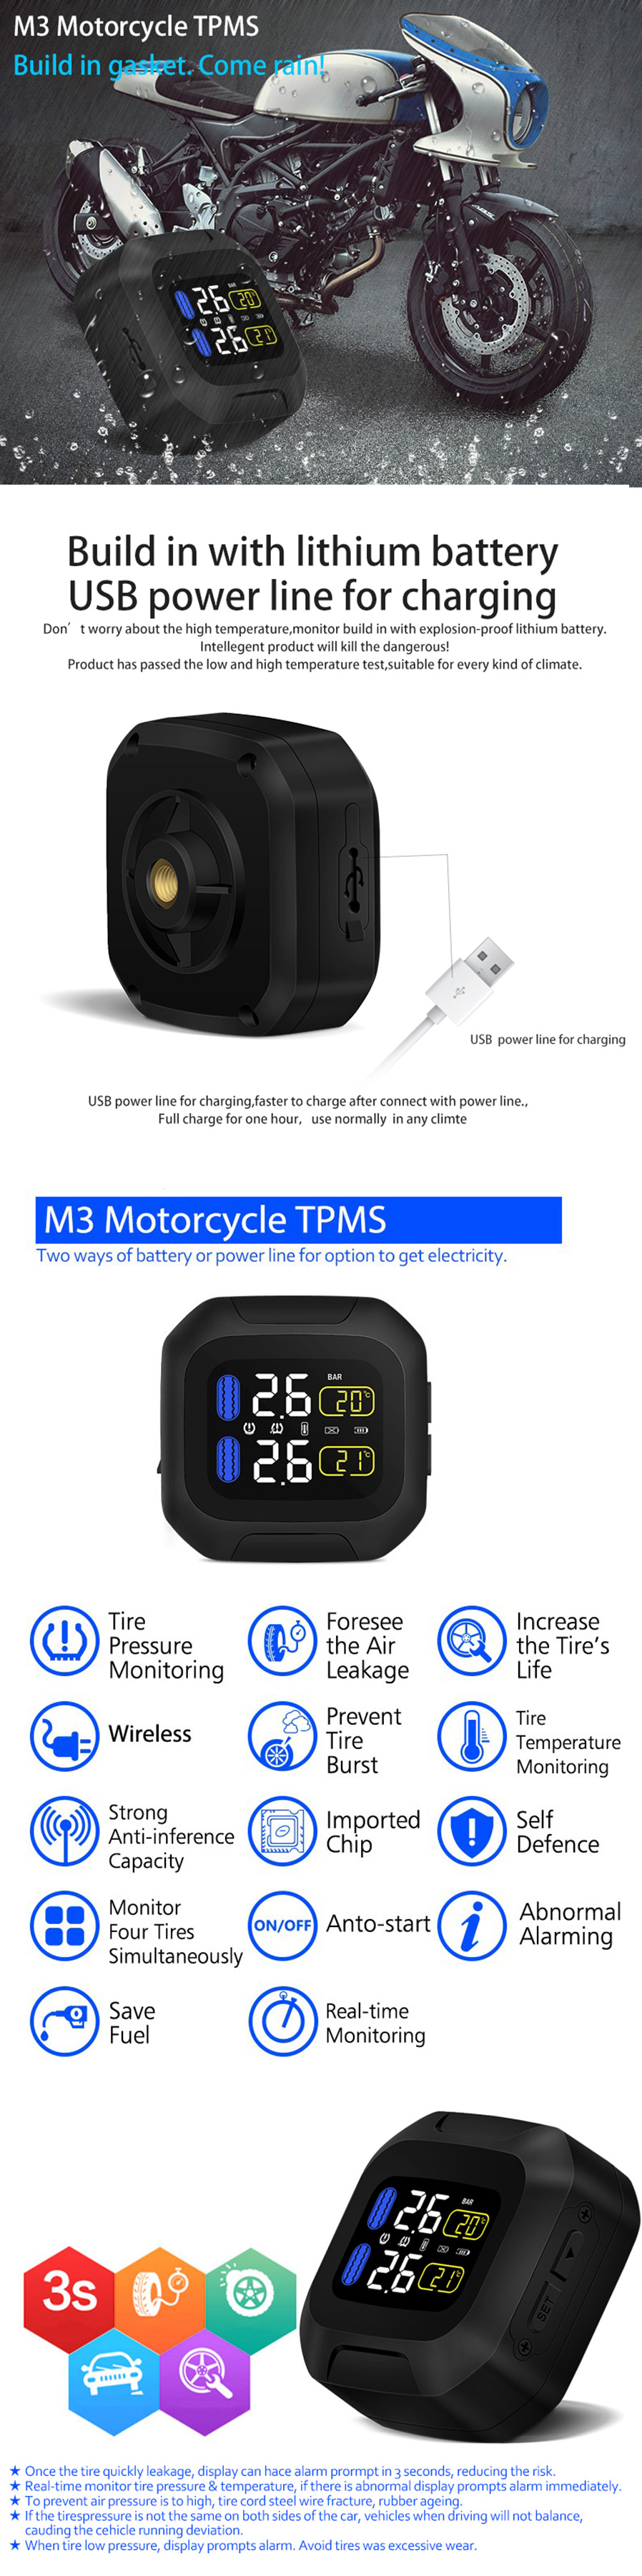 90smart Wireless Motorcycle Tpms Tire Pressure Monitoring System Battery Monitor Type Build On With Lithium Usb Power Line For Charging Display Size 48mm48mm27mm